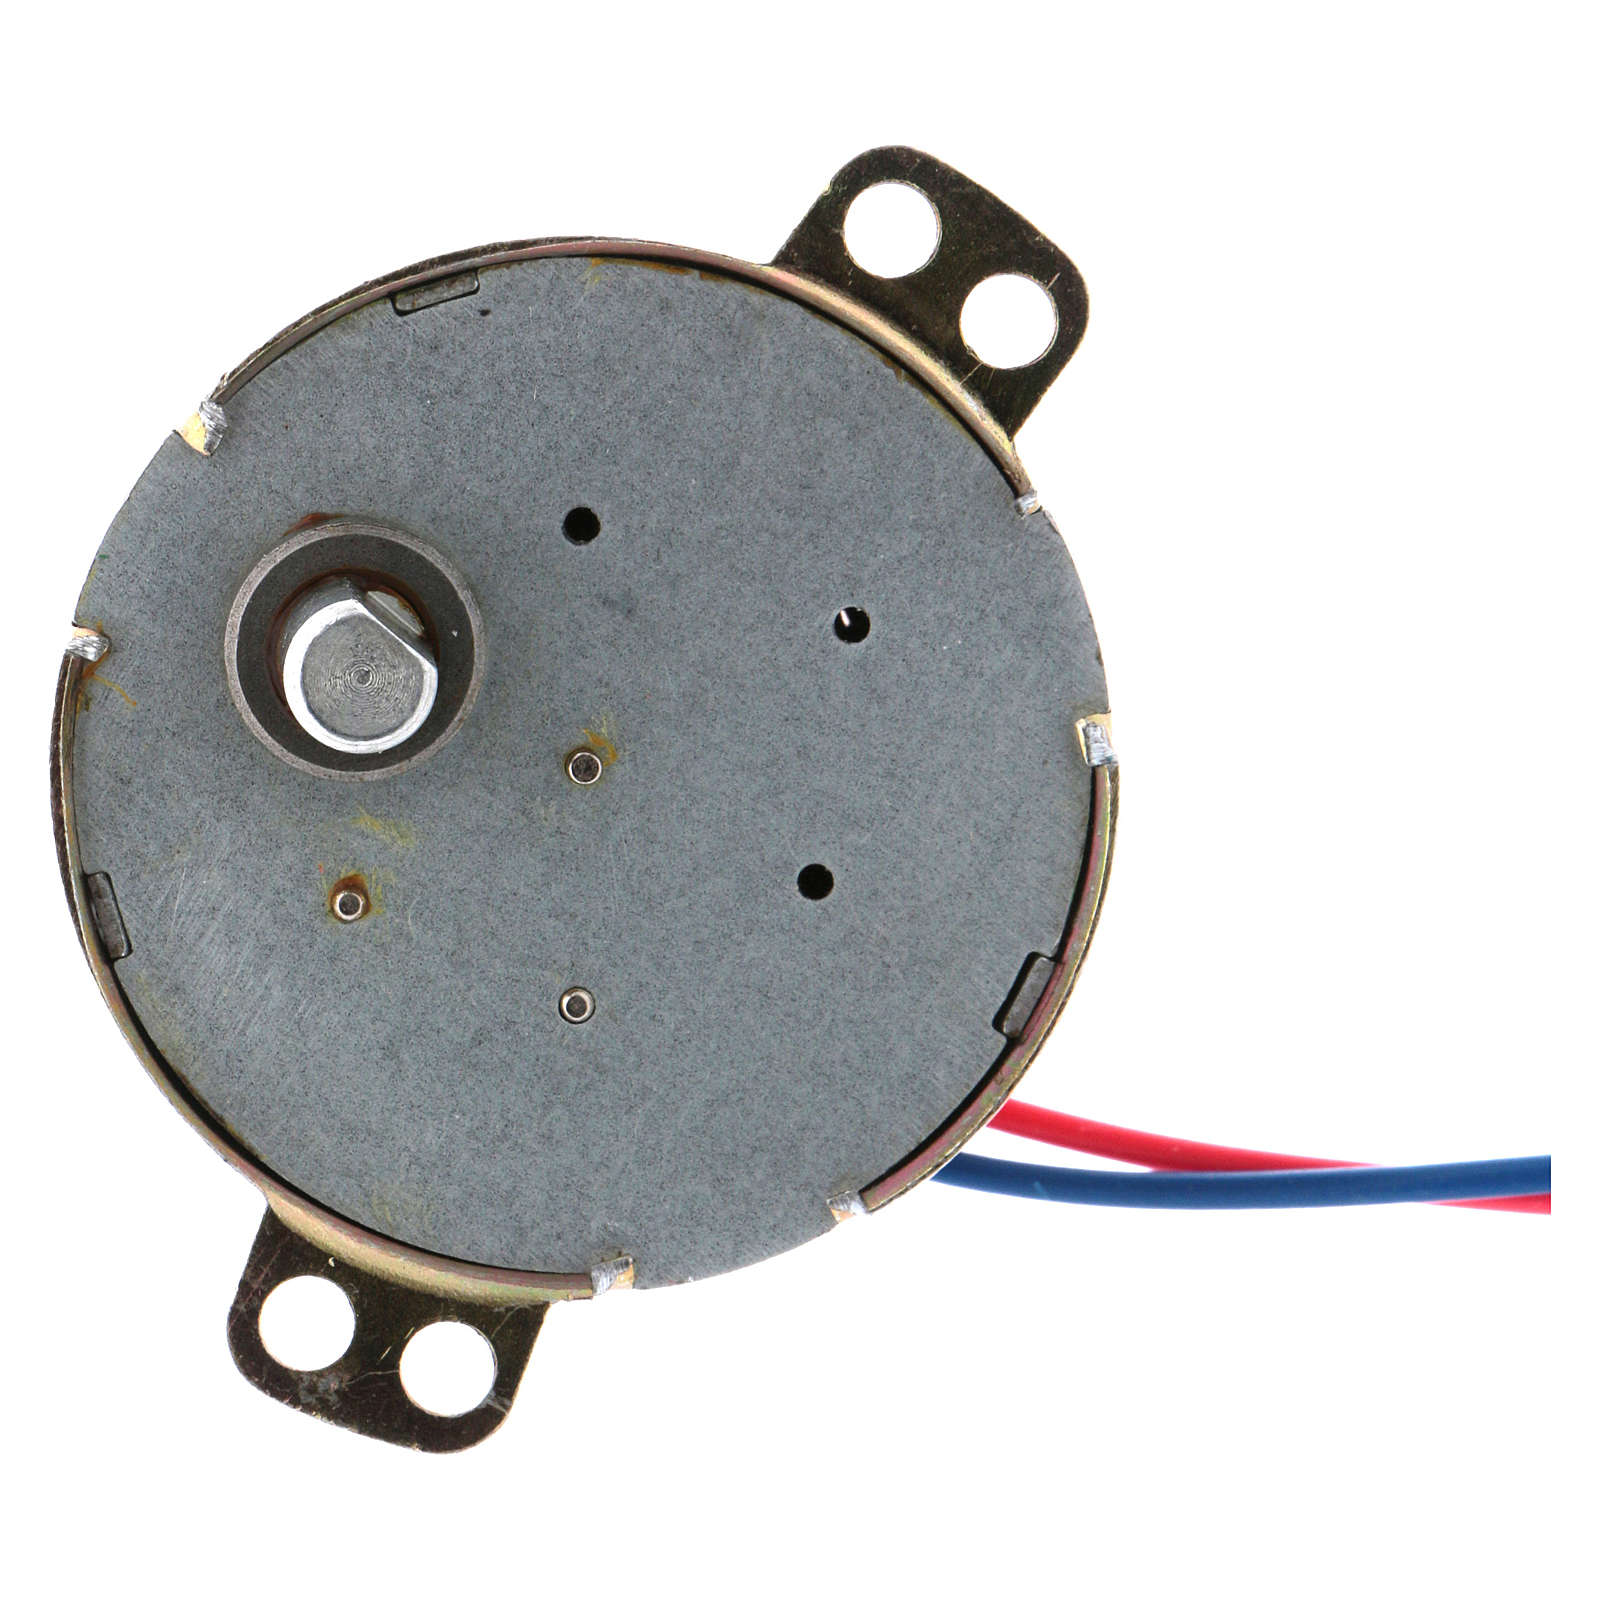 Motor movimientos ME 10 rpm 4